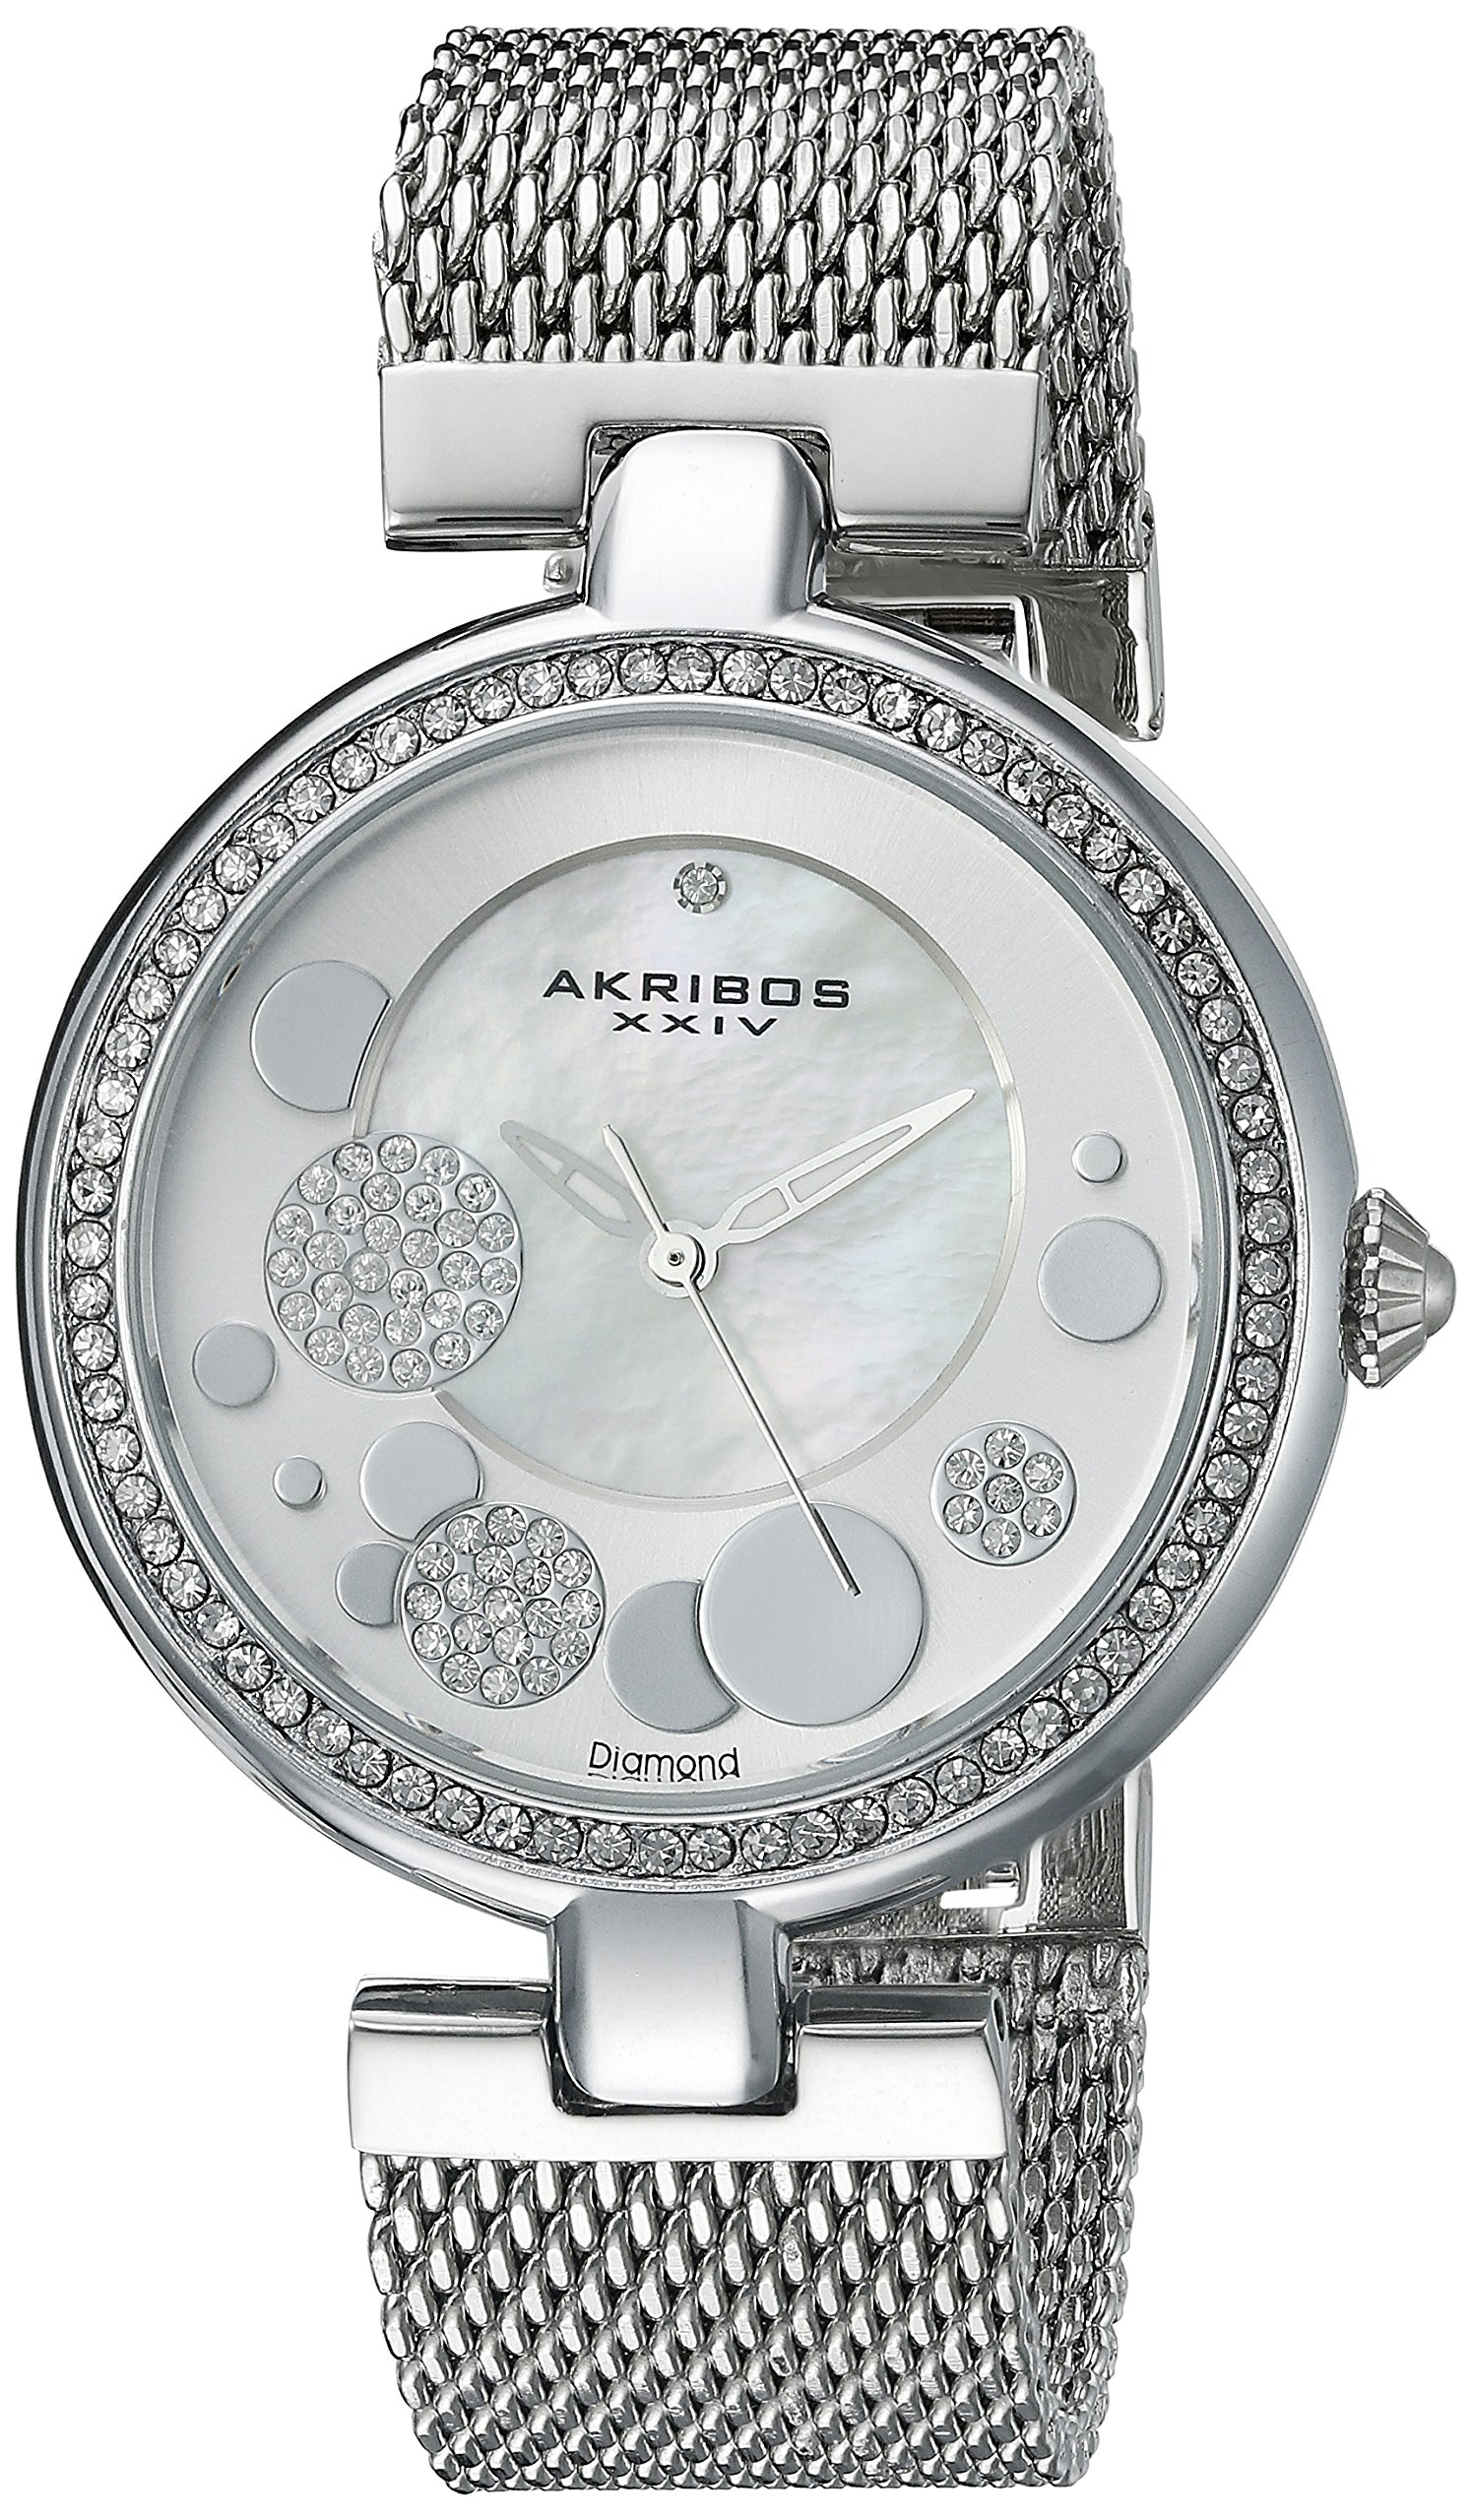 Akribos XXIV Women's AK881 Mother of Pearl Watch with Stainless Steel Mesh Bracelet (Silver)